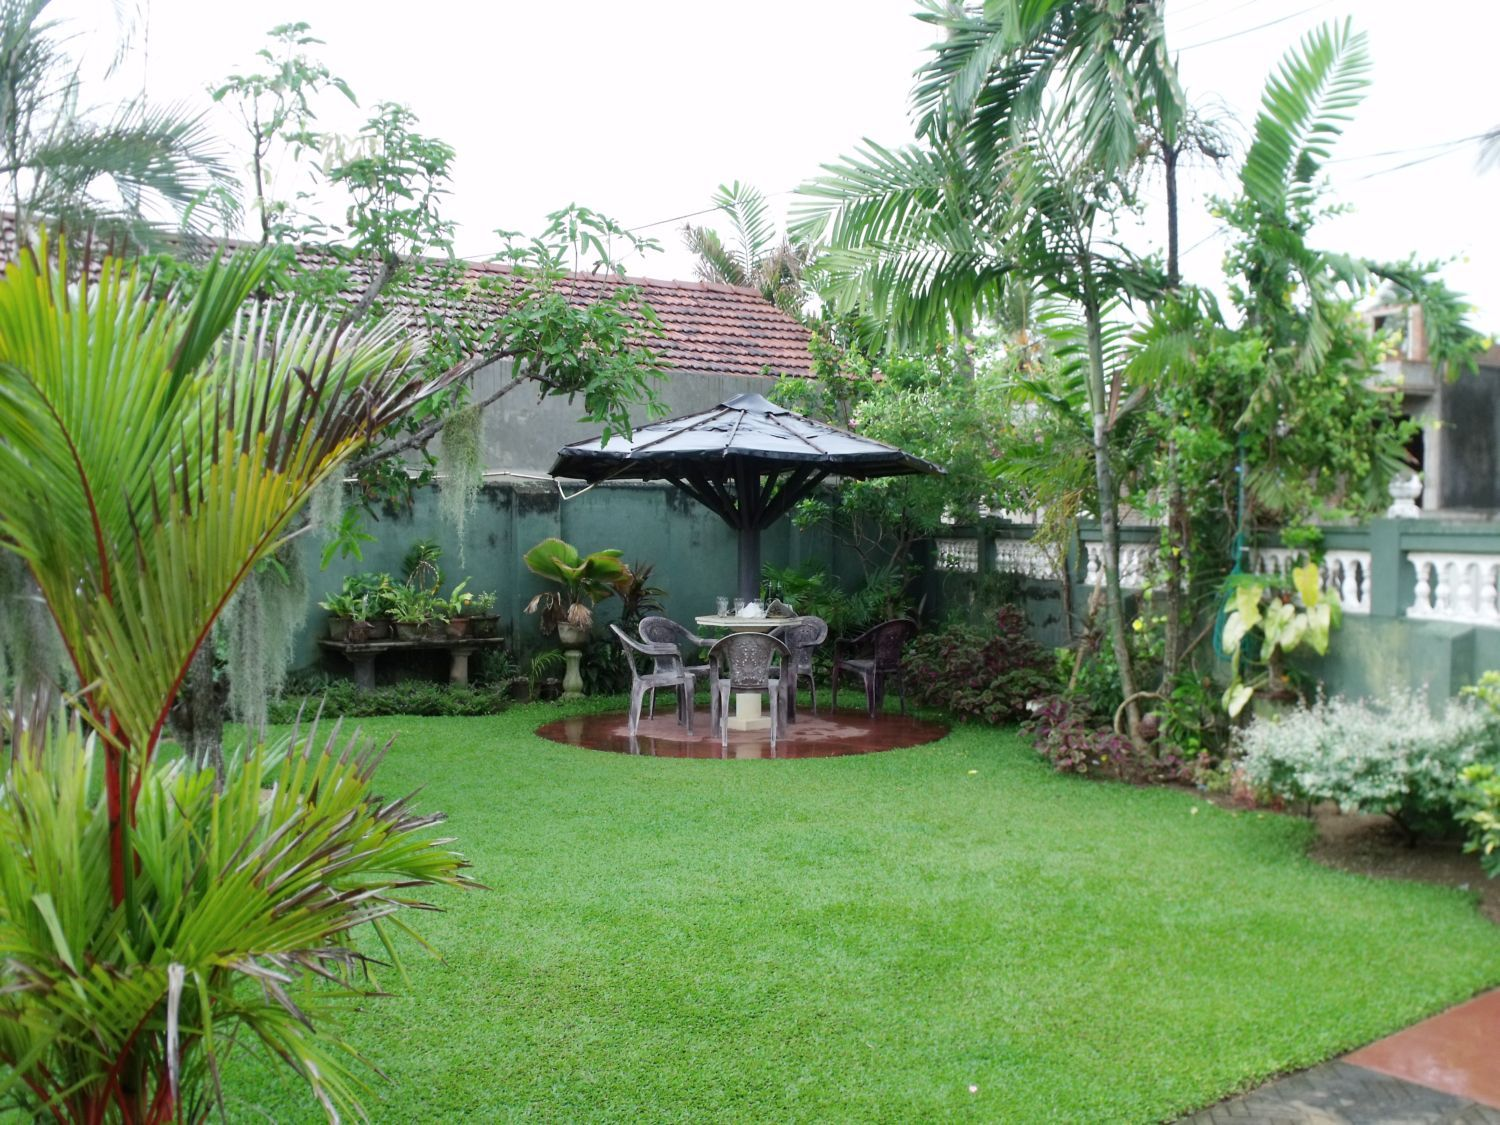 A Home Garden In Duwa Negombo Sri Lanka Trees Plants